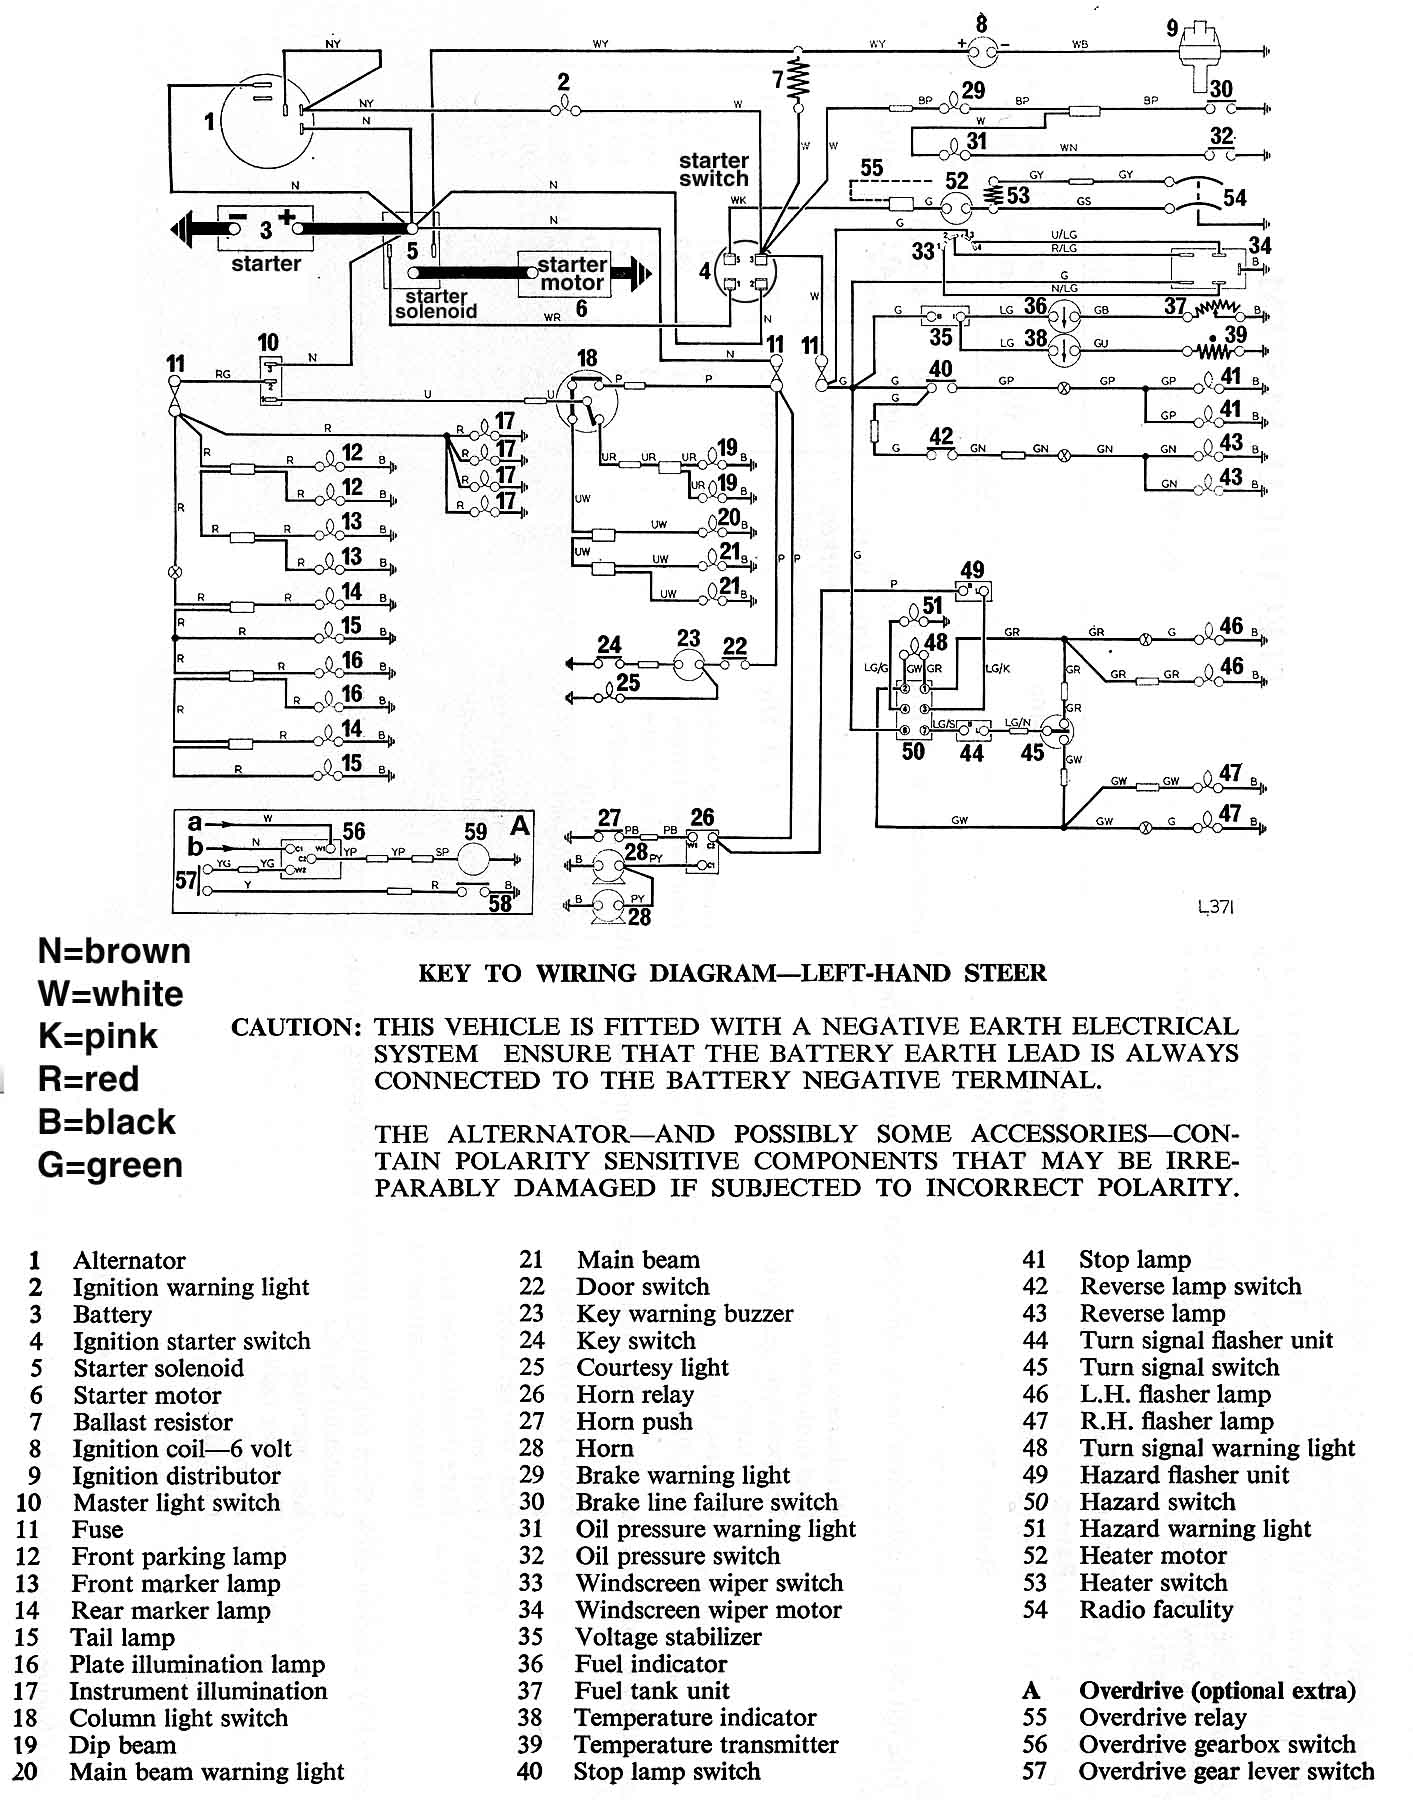 1967 Jeep Cj5 Wiring Diagram | Wiring Liry  Jeep Cj Wiring Diagram on 1985 jeep cj7 wiring-diagram, 2004 chrysler sebring wiring-diagram, 1973 mgb wiring-diagram, 1977 jeep cj7 wiring-diagram, jeep to chevy wiring harness, sw gauges wiring-diagram, jeep patriot wiring-diagram, jeep liberty wiring-diagram, 1979 jeep cj7 wiring-diagram, jeep wagoneer wiring-diagram, 79 jeep cj7 wiring-diagram, jeep cj7 belt diagram, jeep jk wiring-diagram, jeep cherokee vacuum line diagrams, jeep xj wiring-diagram, pontiac bonneville wiring-diagram, isuzu trooper wiring-diagram, jeep cherokee tail light wiring diagram, jeep cj3b wiring-diagram, jeep tj wiring-diagram,